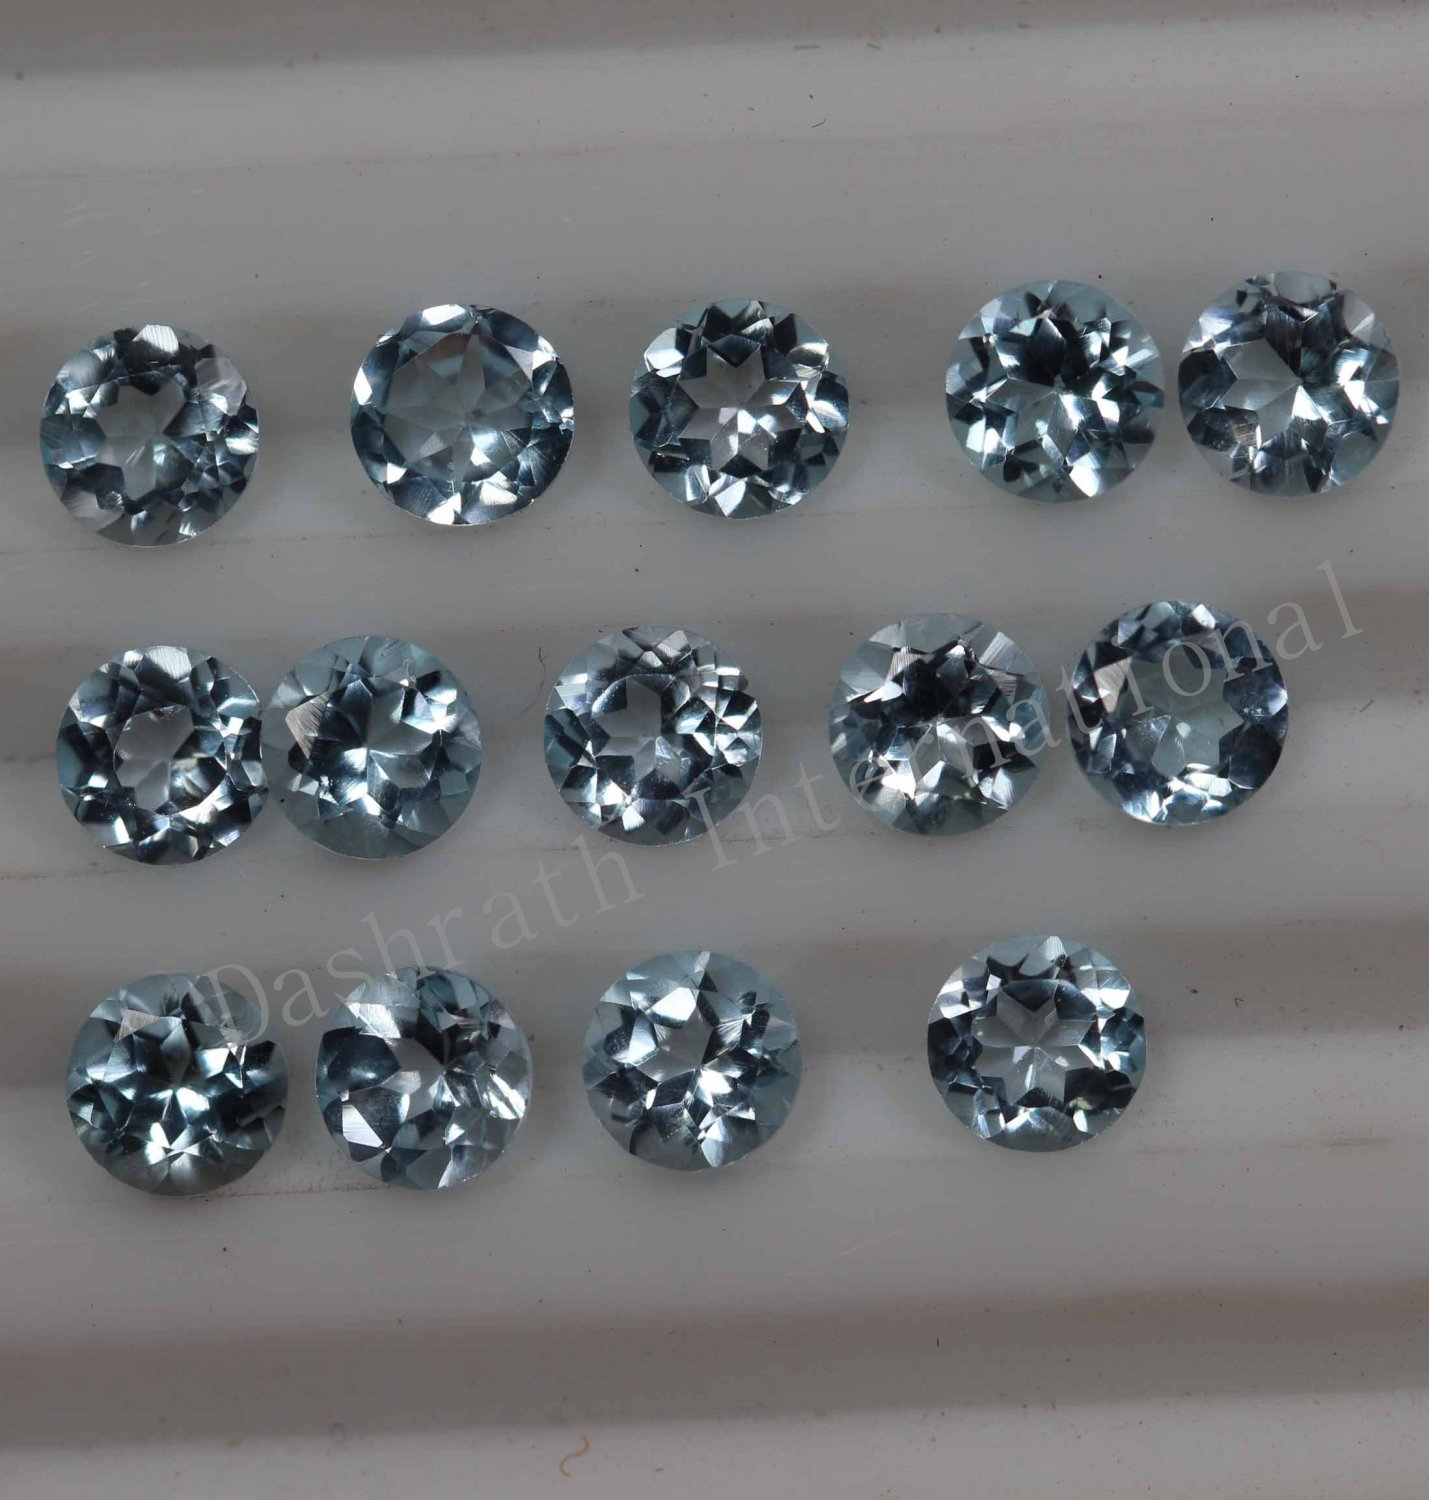 3mmNatural Sky Blue Topaz Faceted Cut Round 75 Pieces Lot Blue Color  Top Quality Loose Gemstone